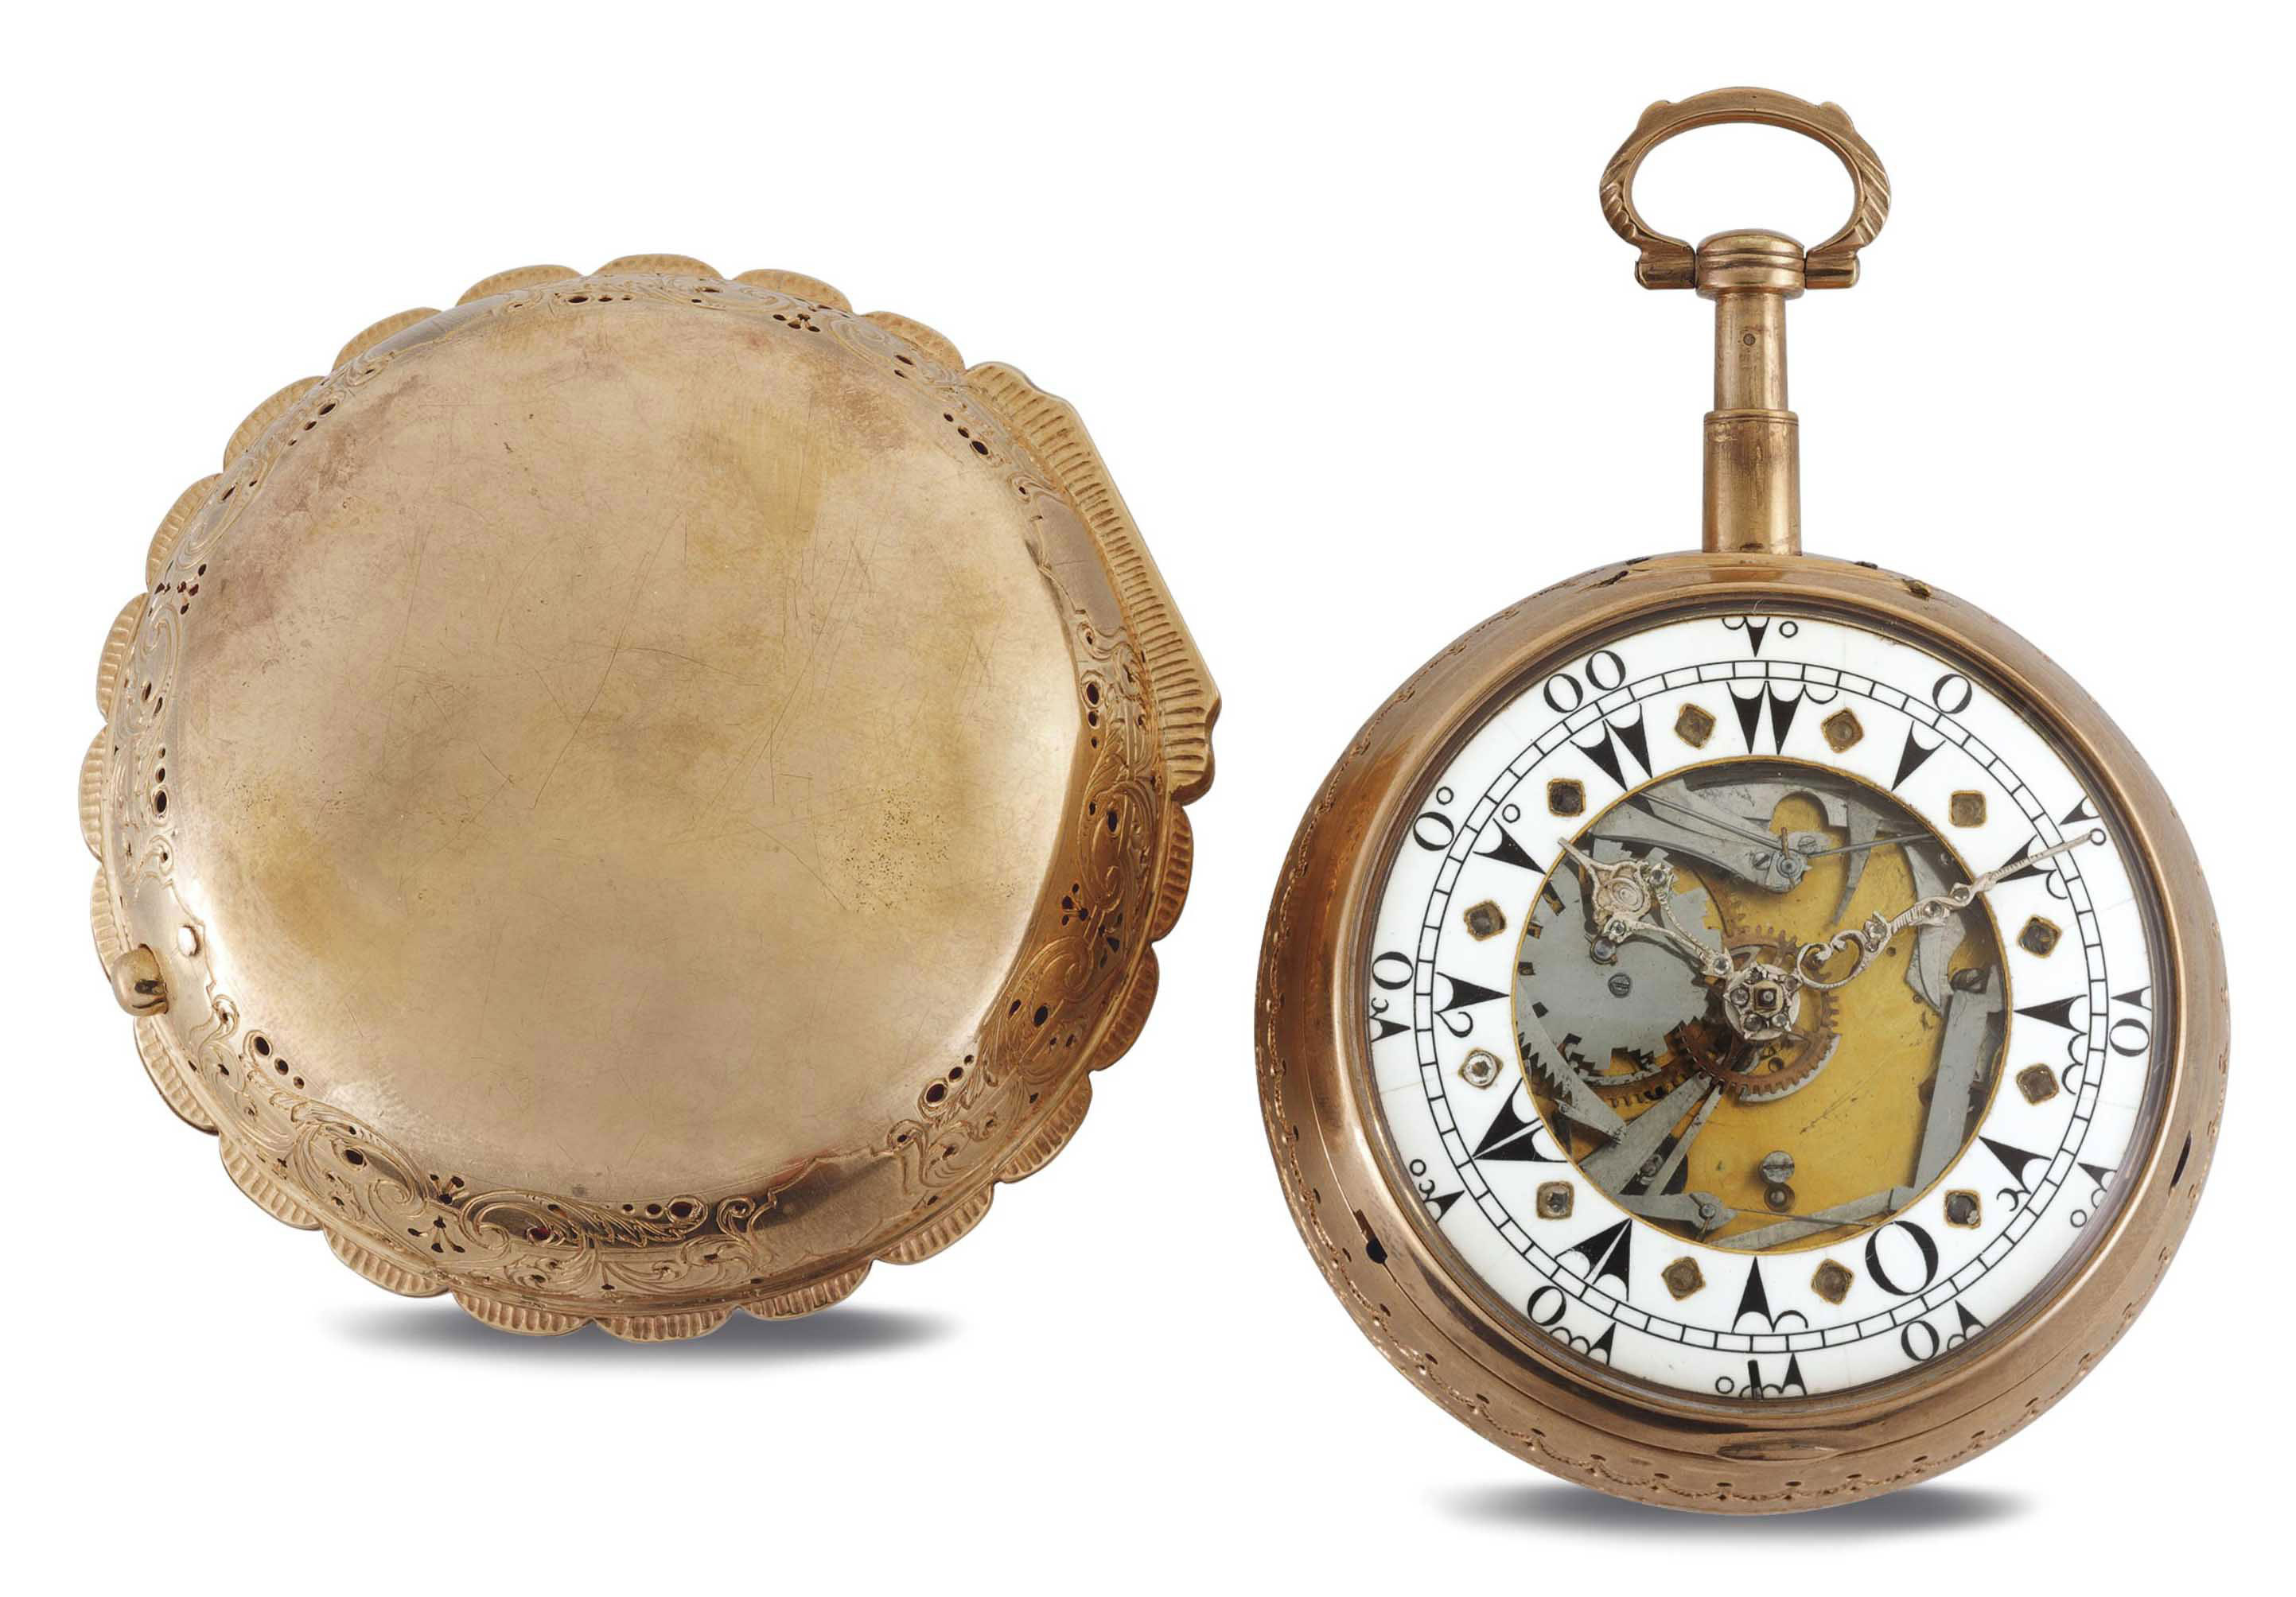 MARKWICK MARKHAM. AN PINK GILT SKELETONIZED TWO-TRAIN QUARTER REPEATING GRANDE AND PETITE SONNERIE CLOCKWATCH MADE FOR THE TURKISH MARKET